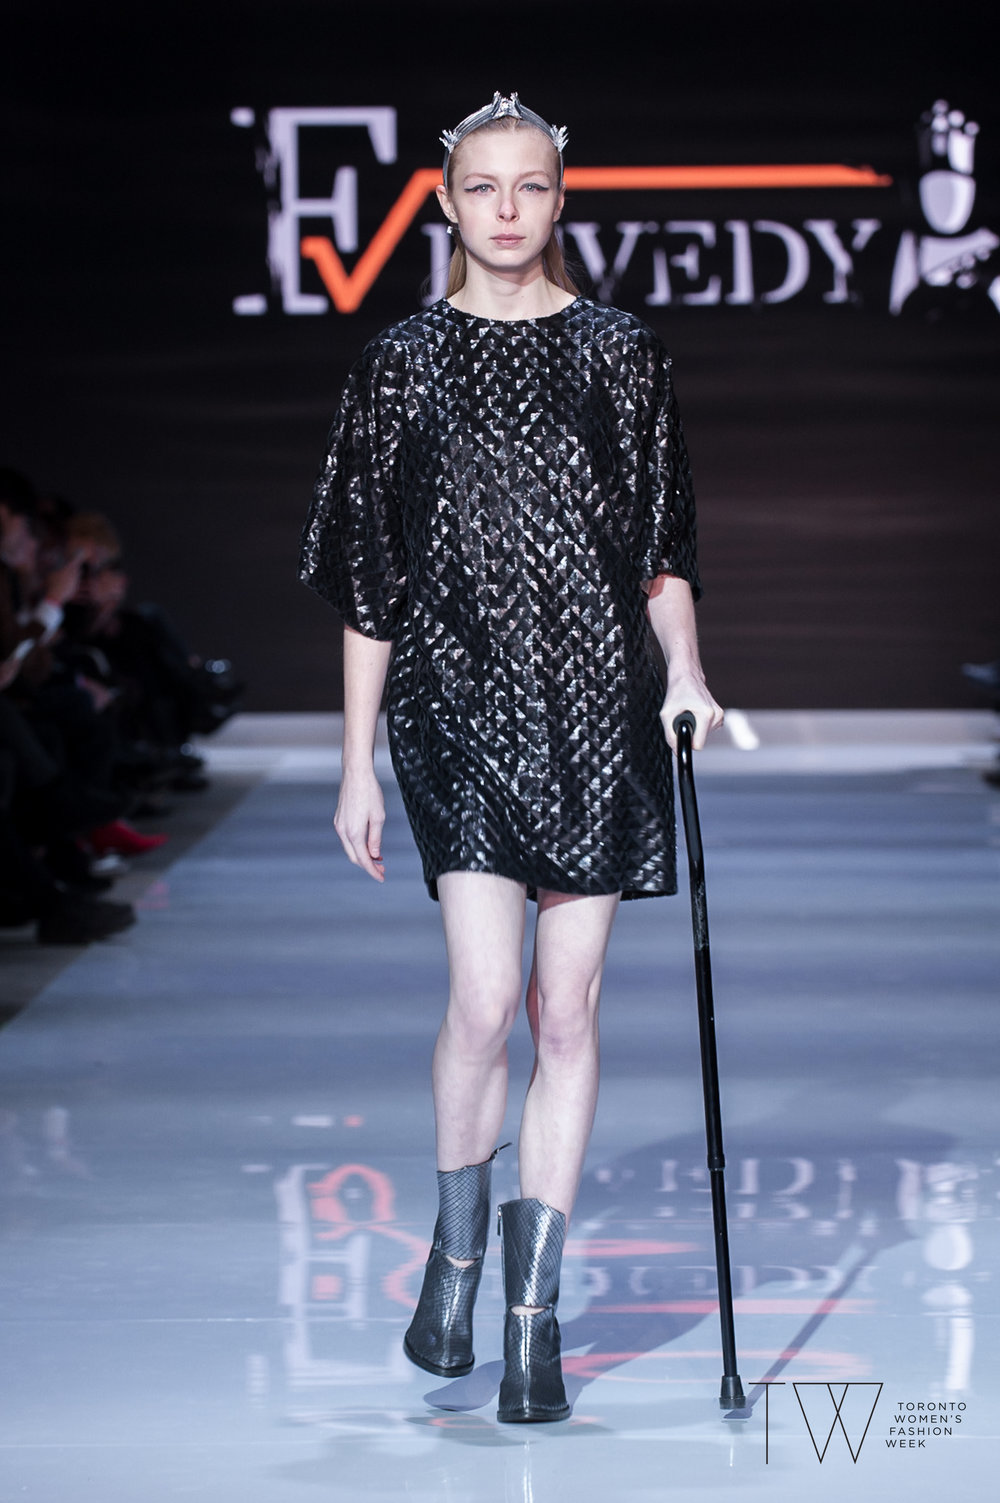 Fesvedy image courtesy of Toronto Women's Fashion Week